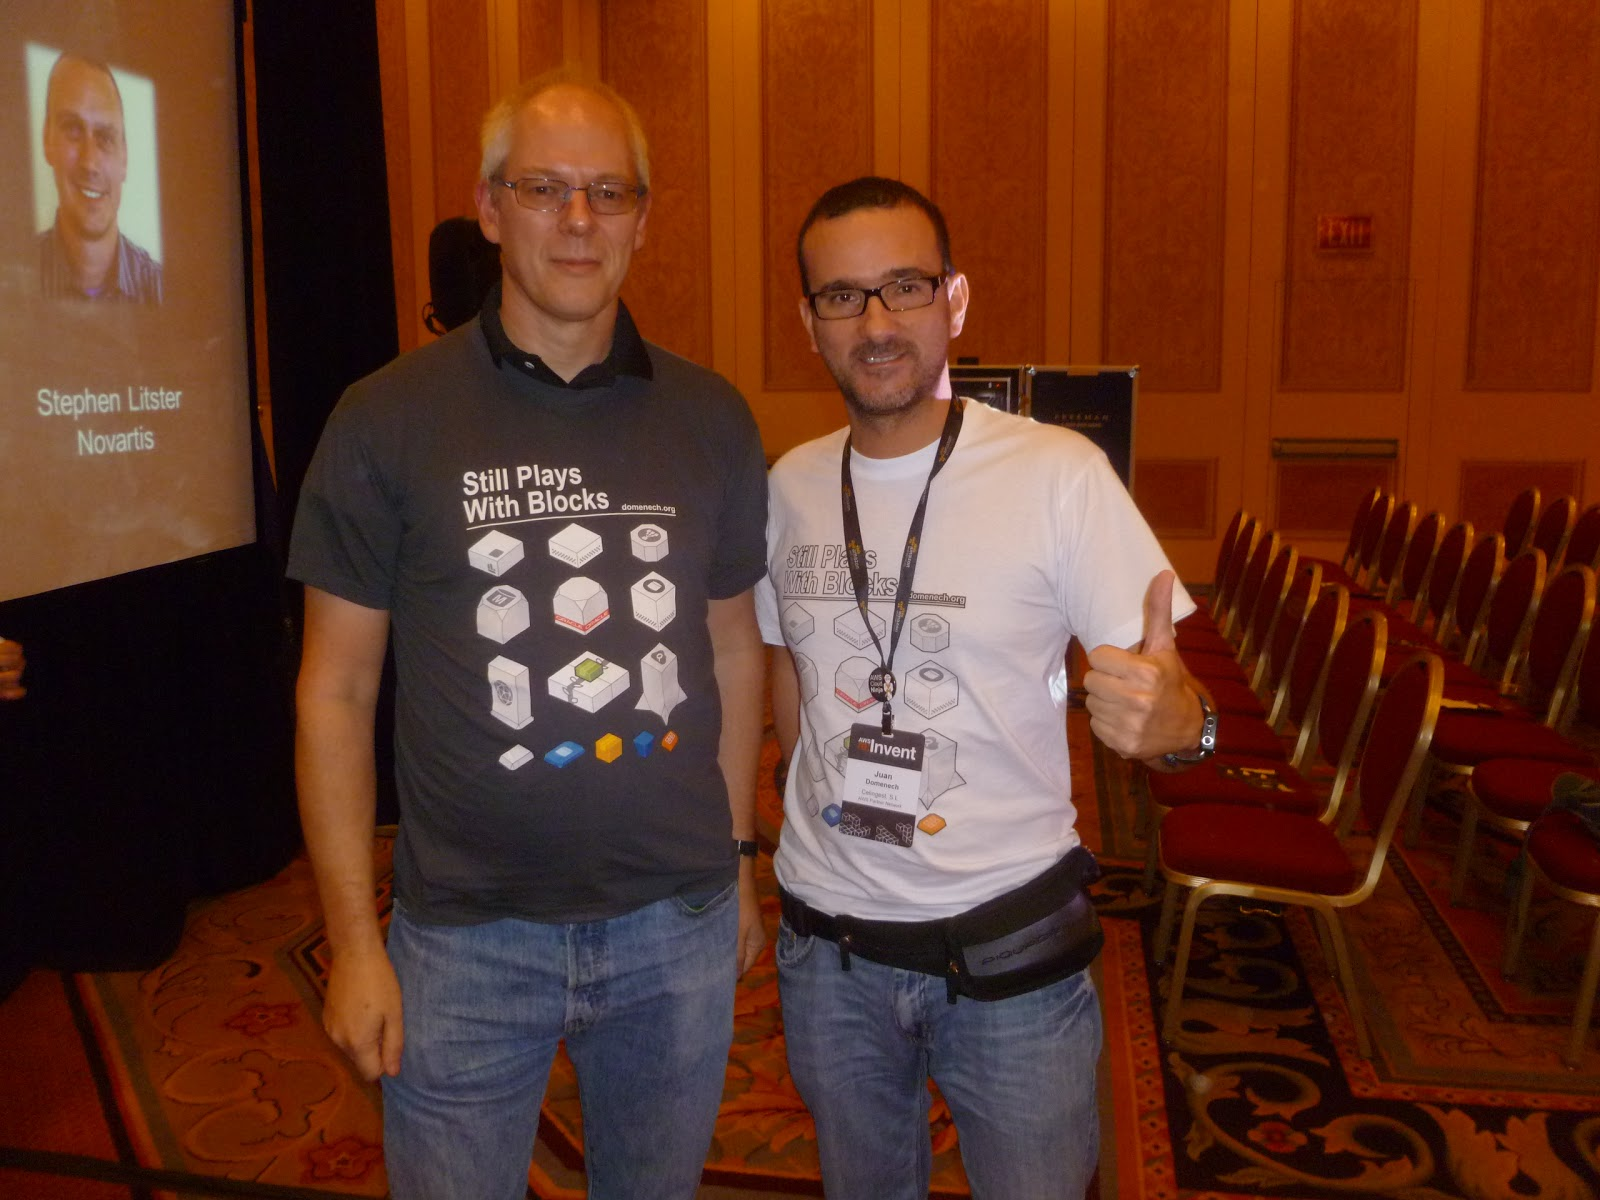 aws-reinvent-t-shirt-blog-domenech-org-adrian-cockcroft